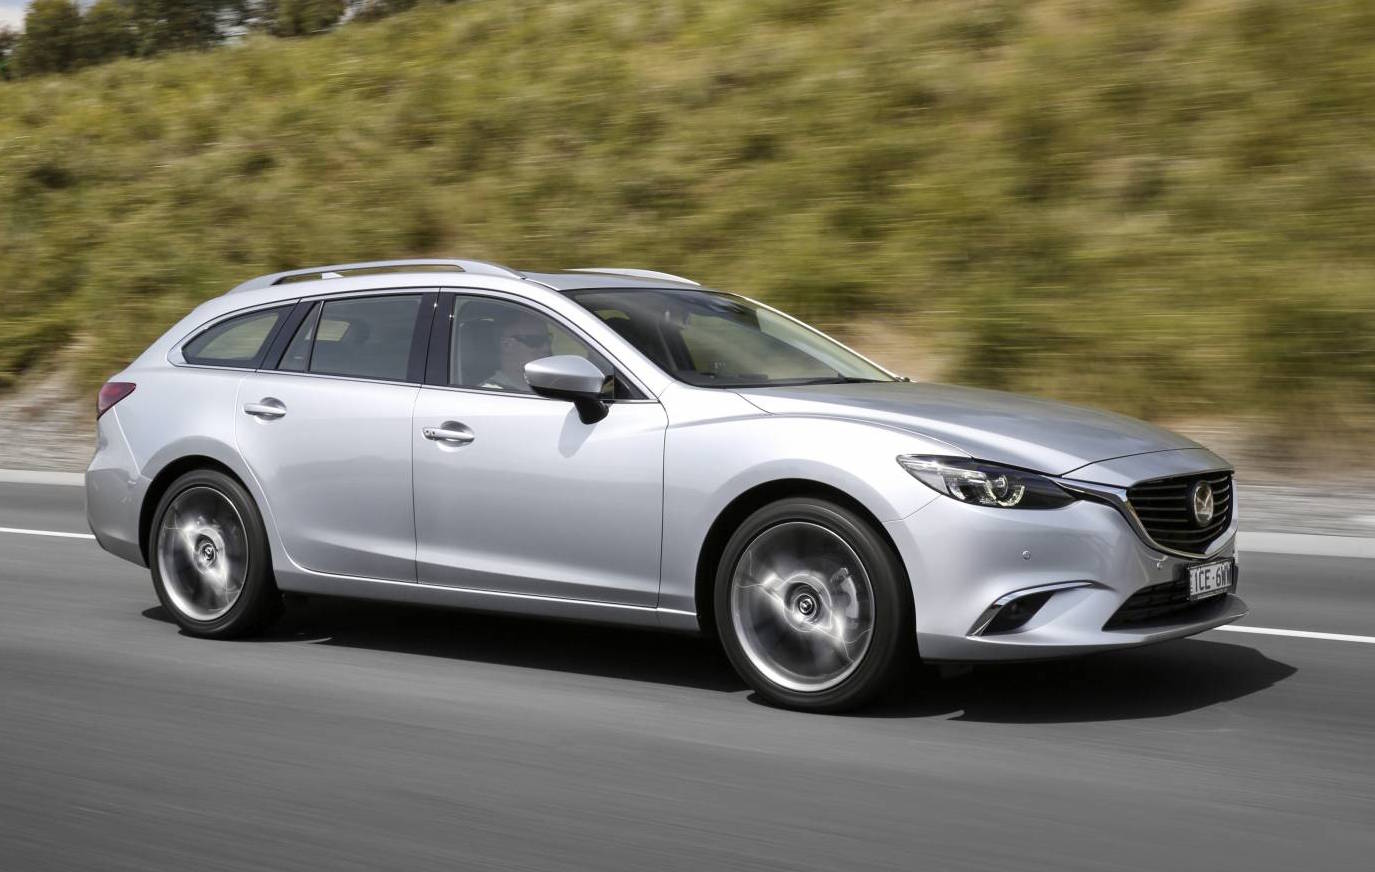 2016 Mazda6 range in Australia updated with added safety tech | PerformanceDrive